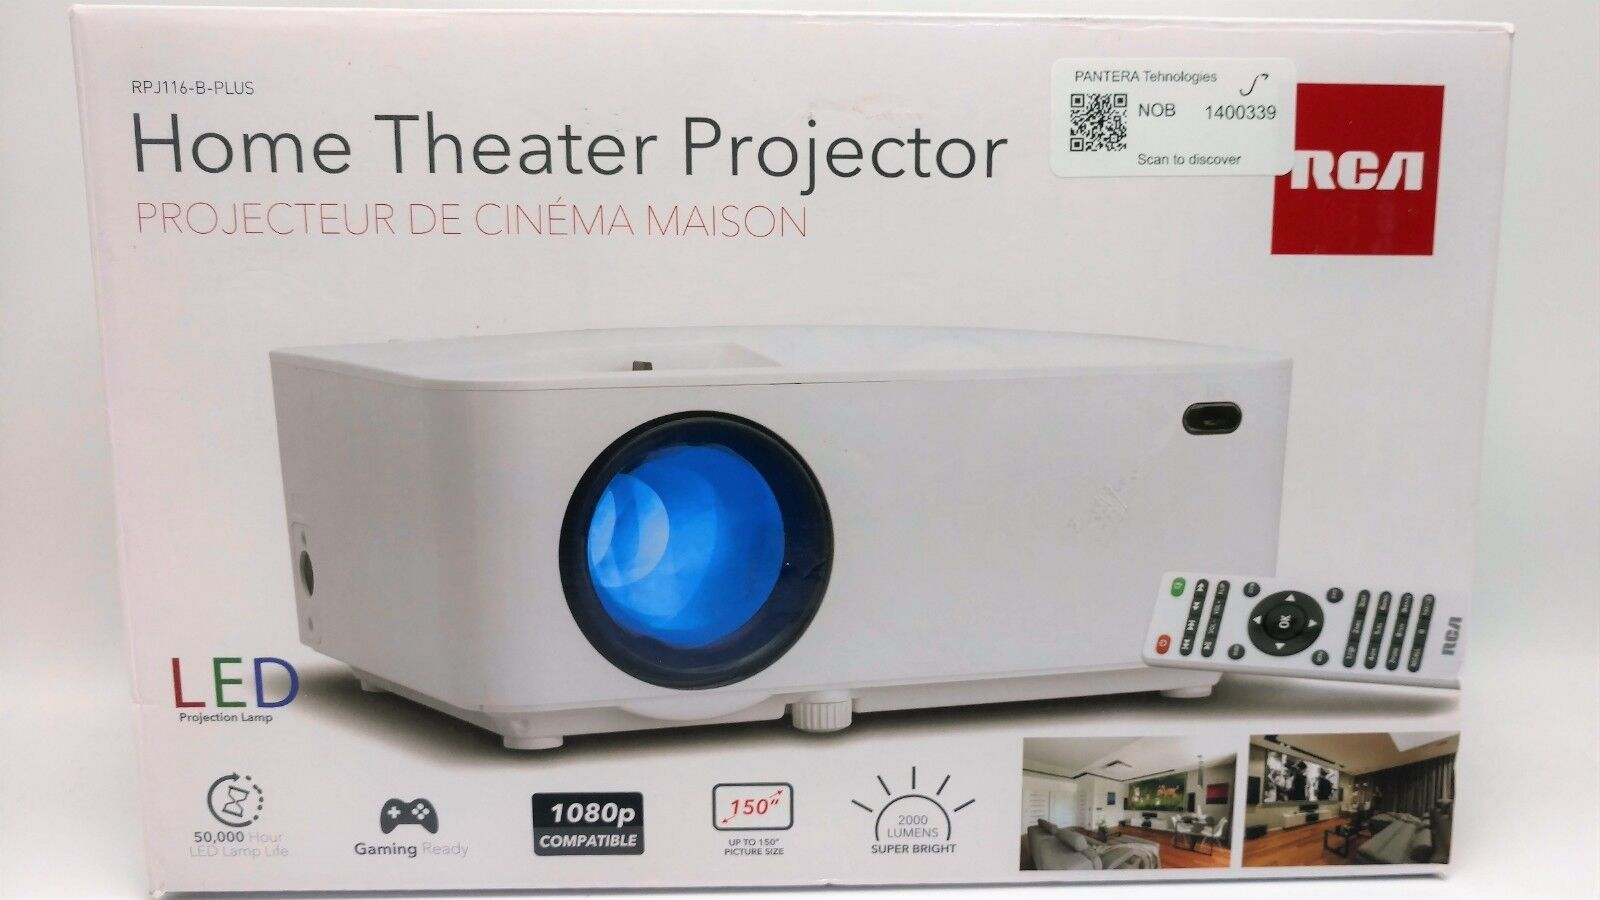 RCA Home Theater Projector Full HD 1080P - 2000 Lumens RPJ116-B-PLUS White